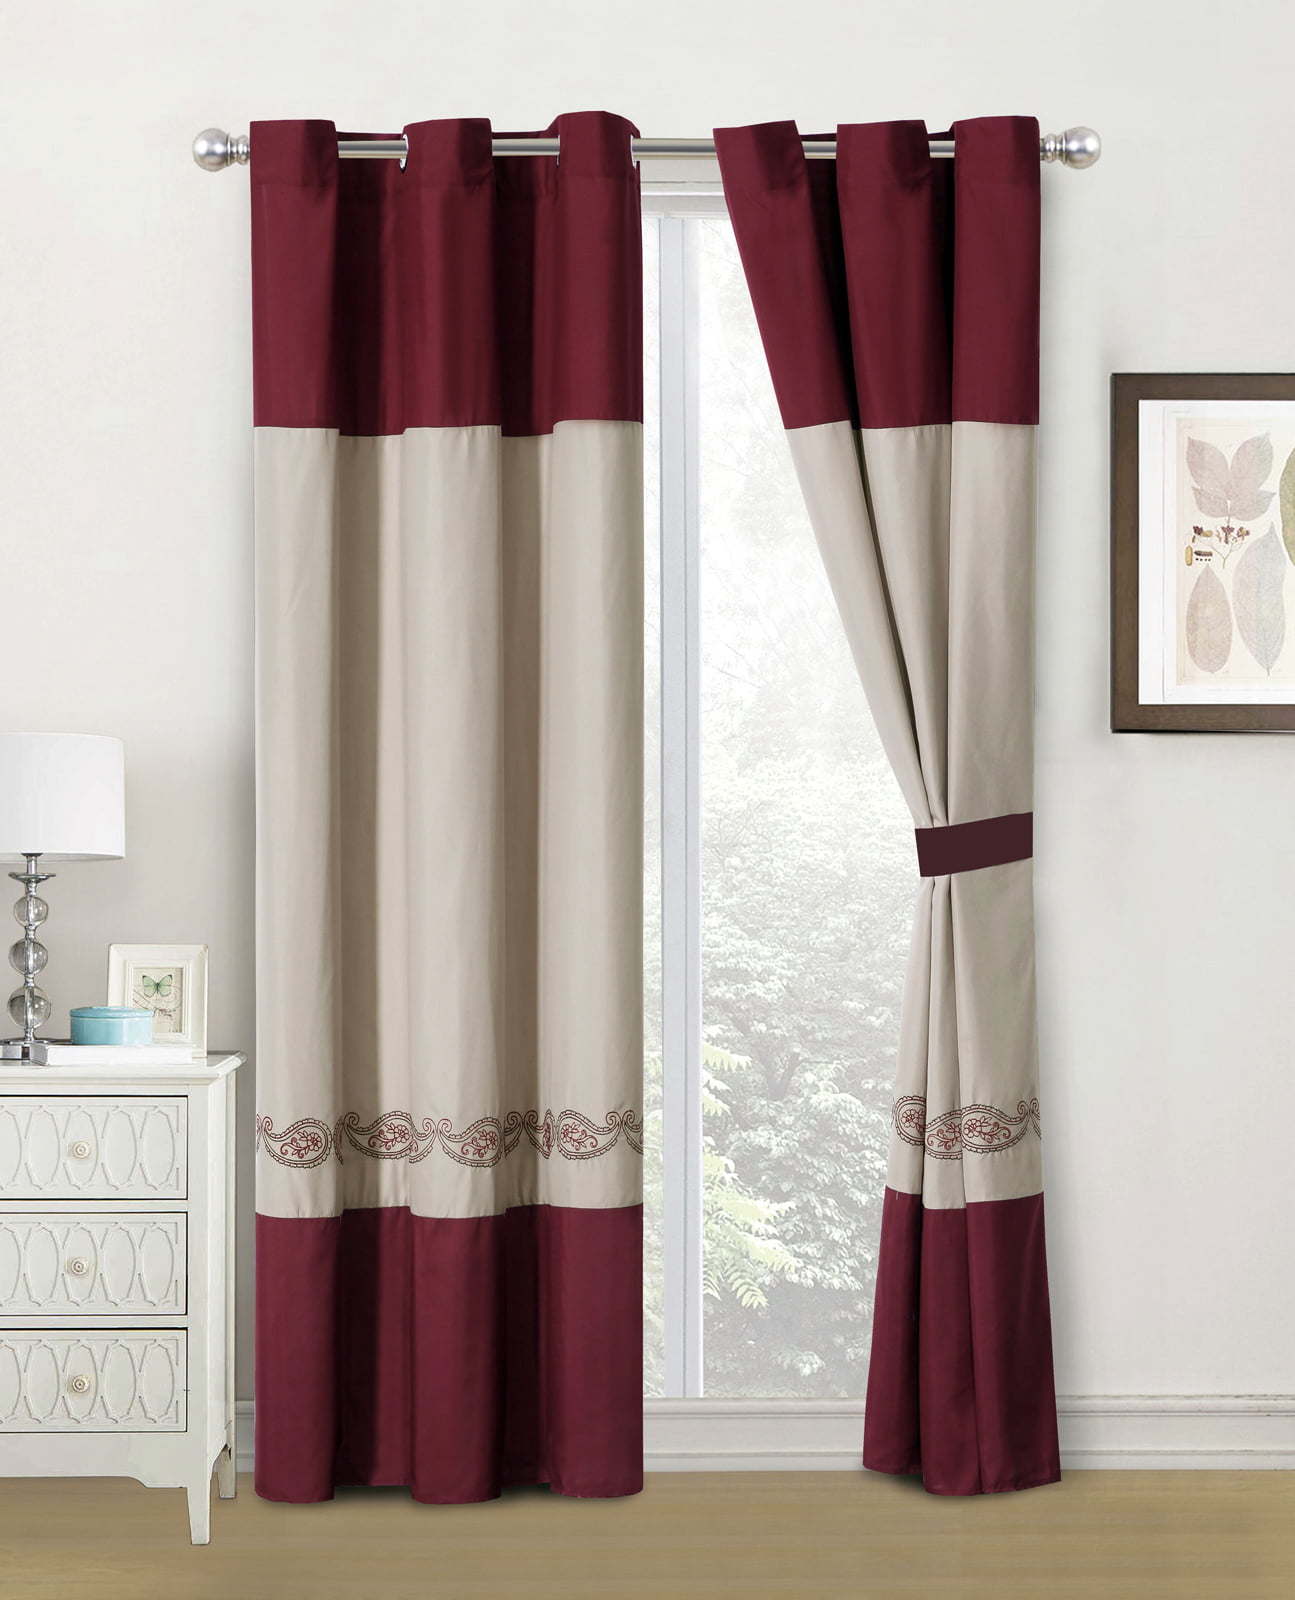 4-Pc Marquise Floral Paisley Embroidery Curtain Set